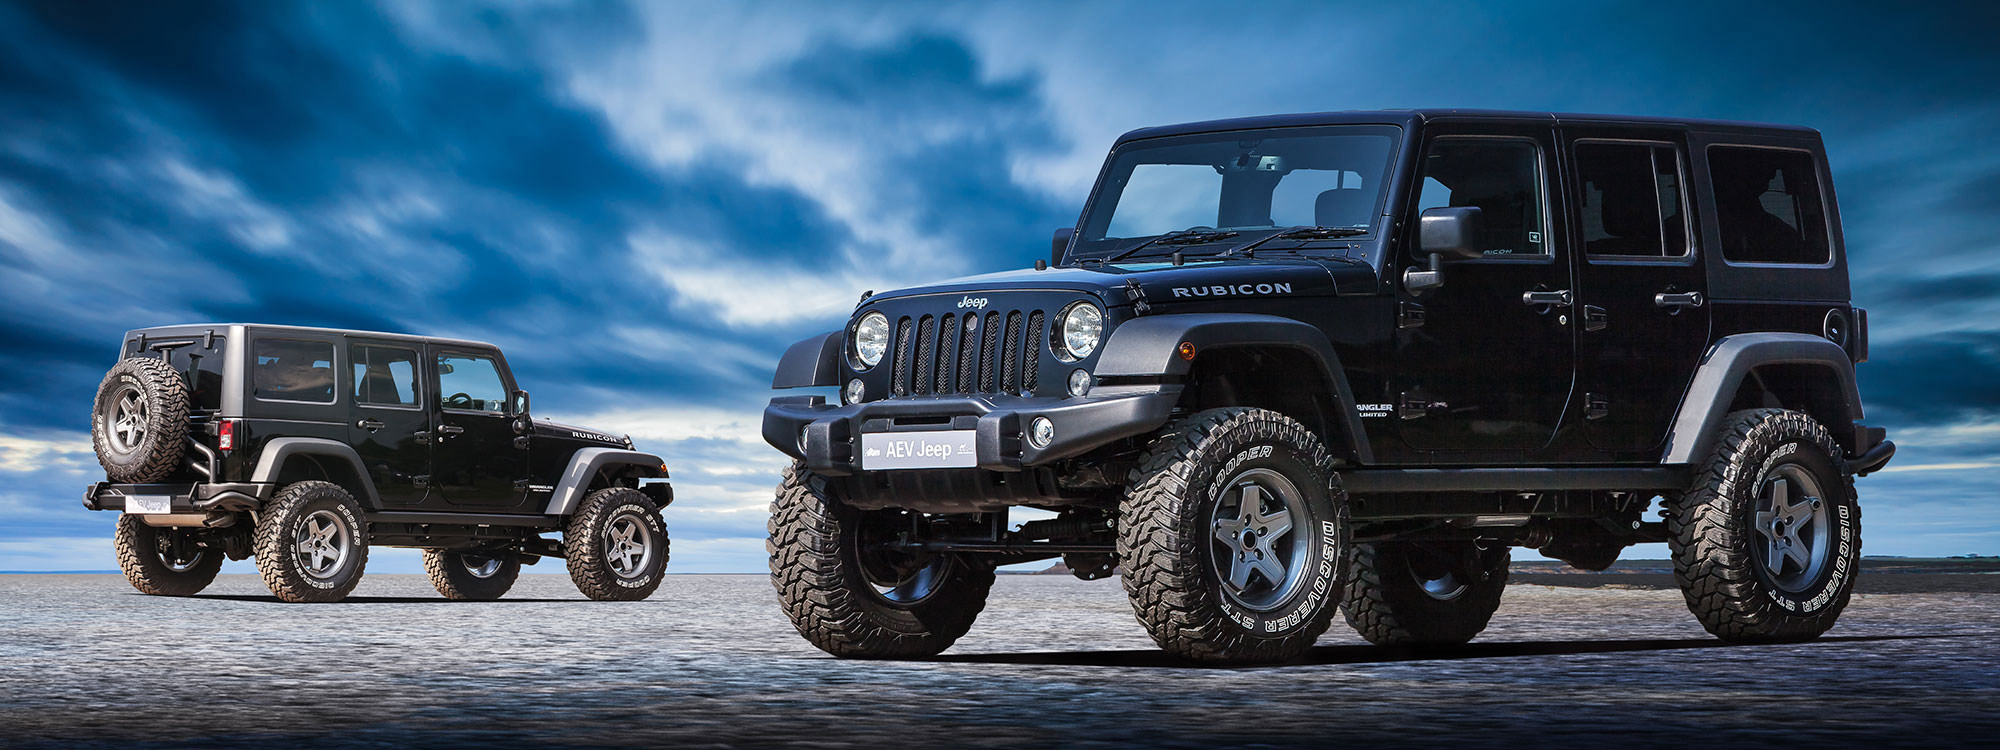 homepage-slider-Black-Wrangler1